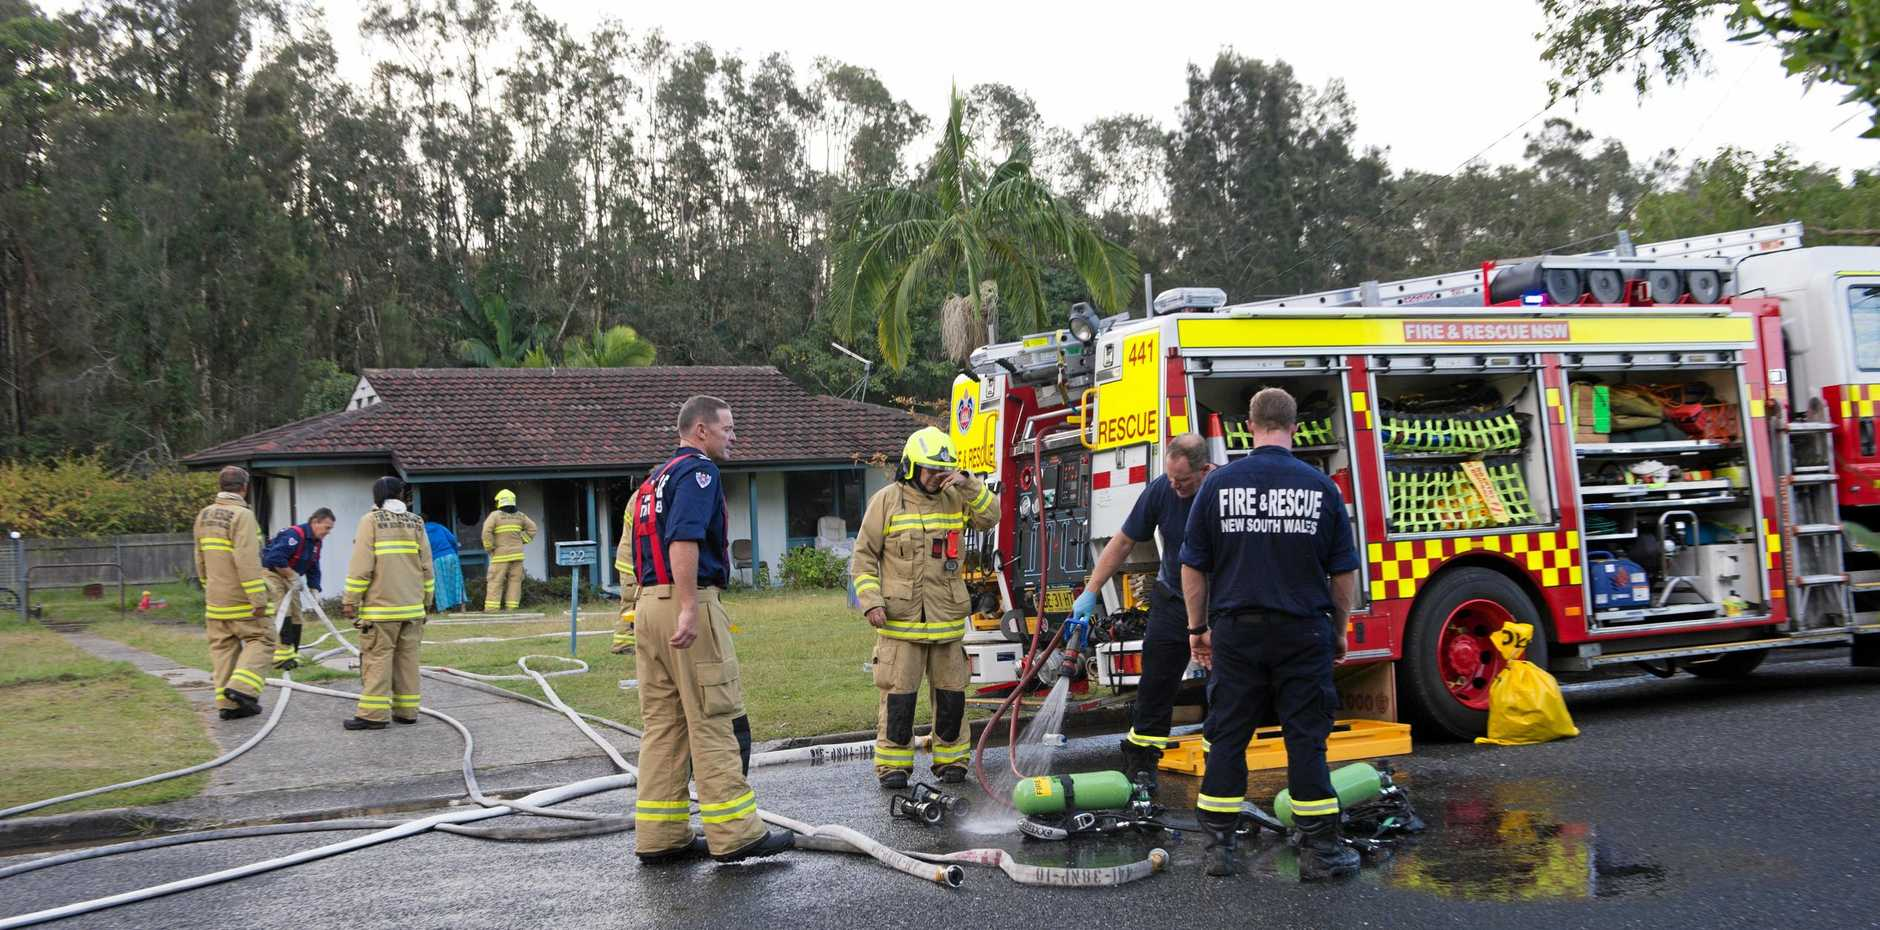 A house was destroyed by fire in Toormina's Barcoo Crt this afternoon.